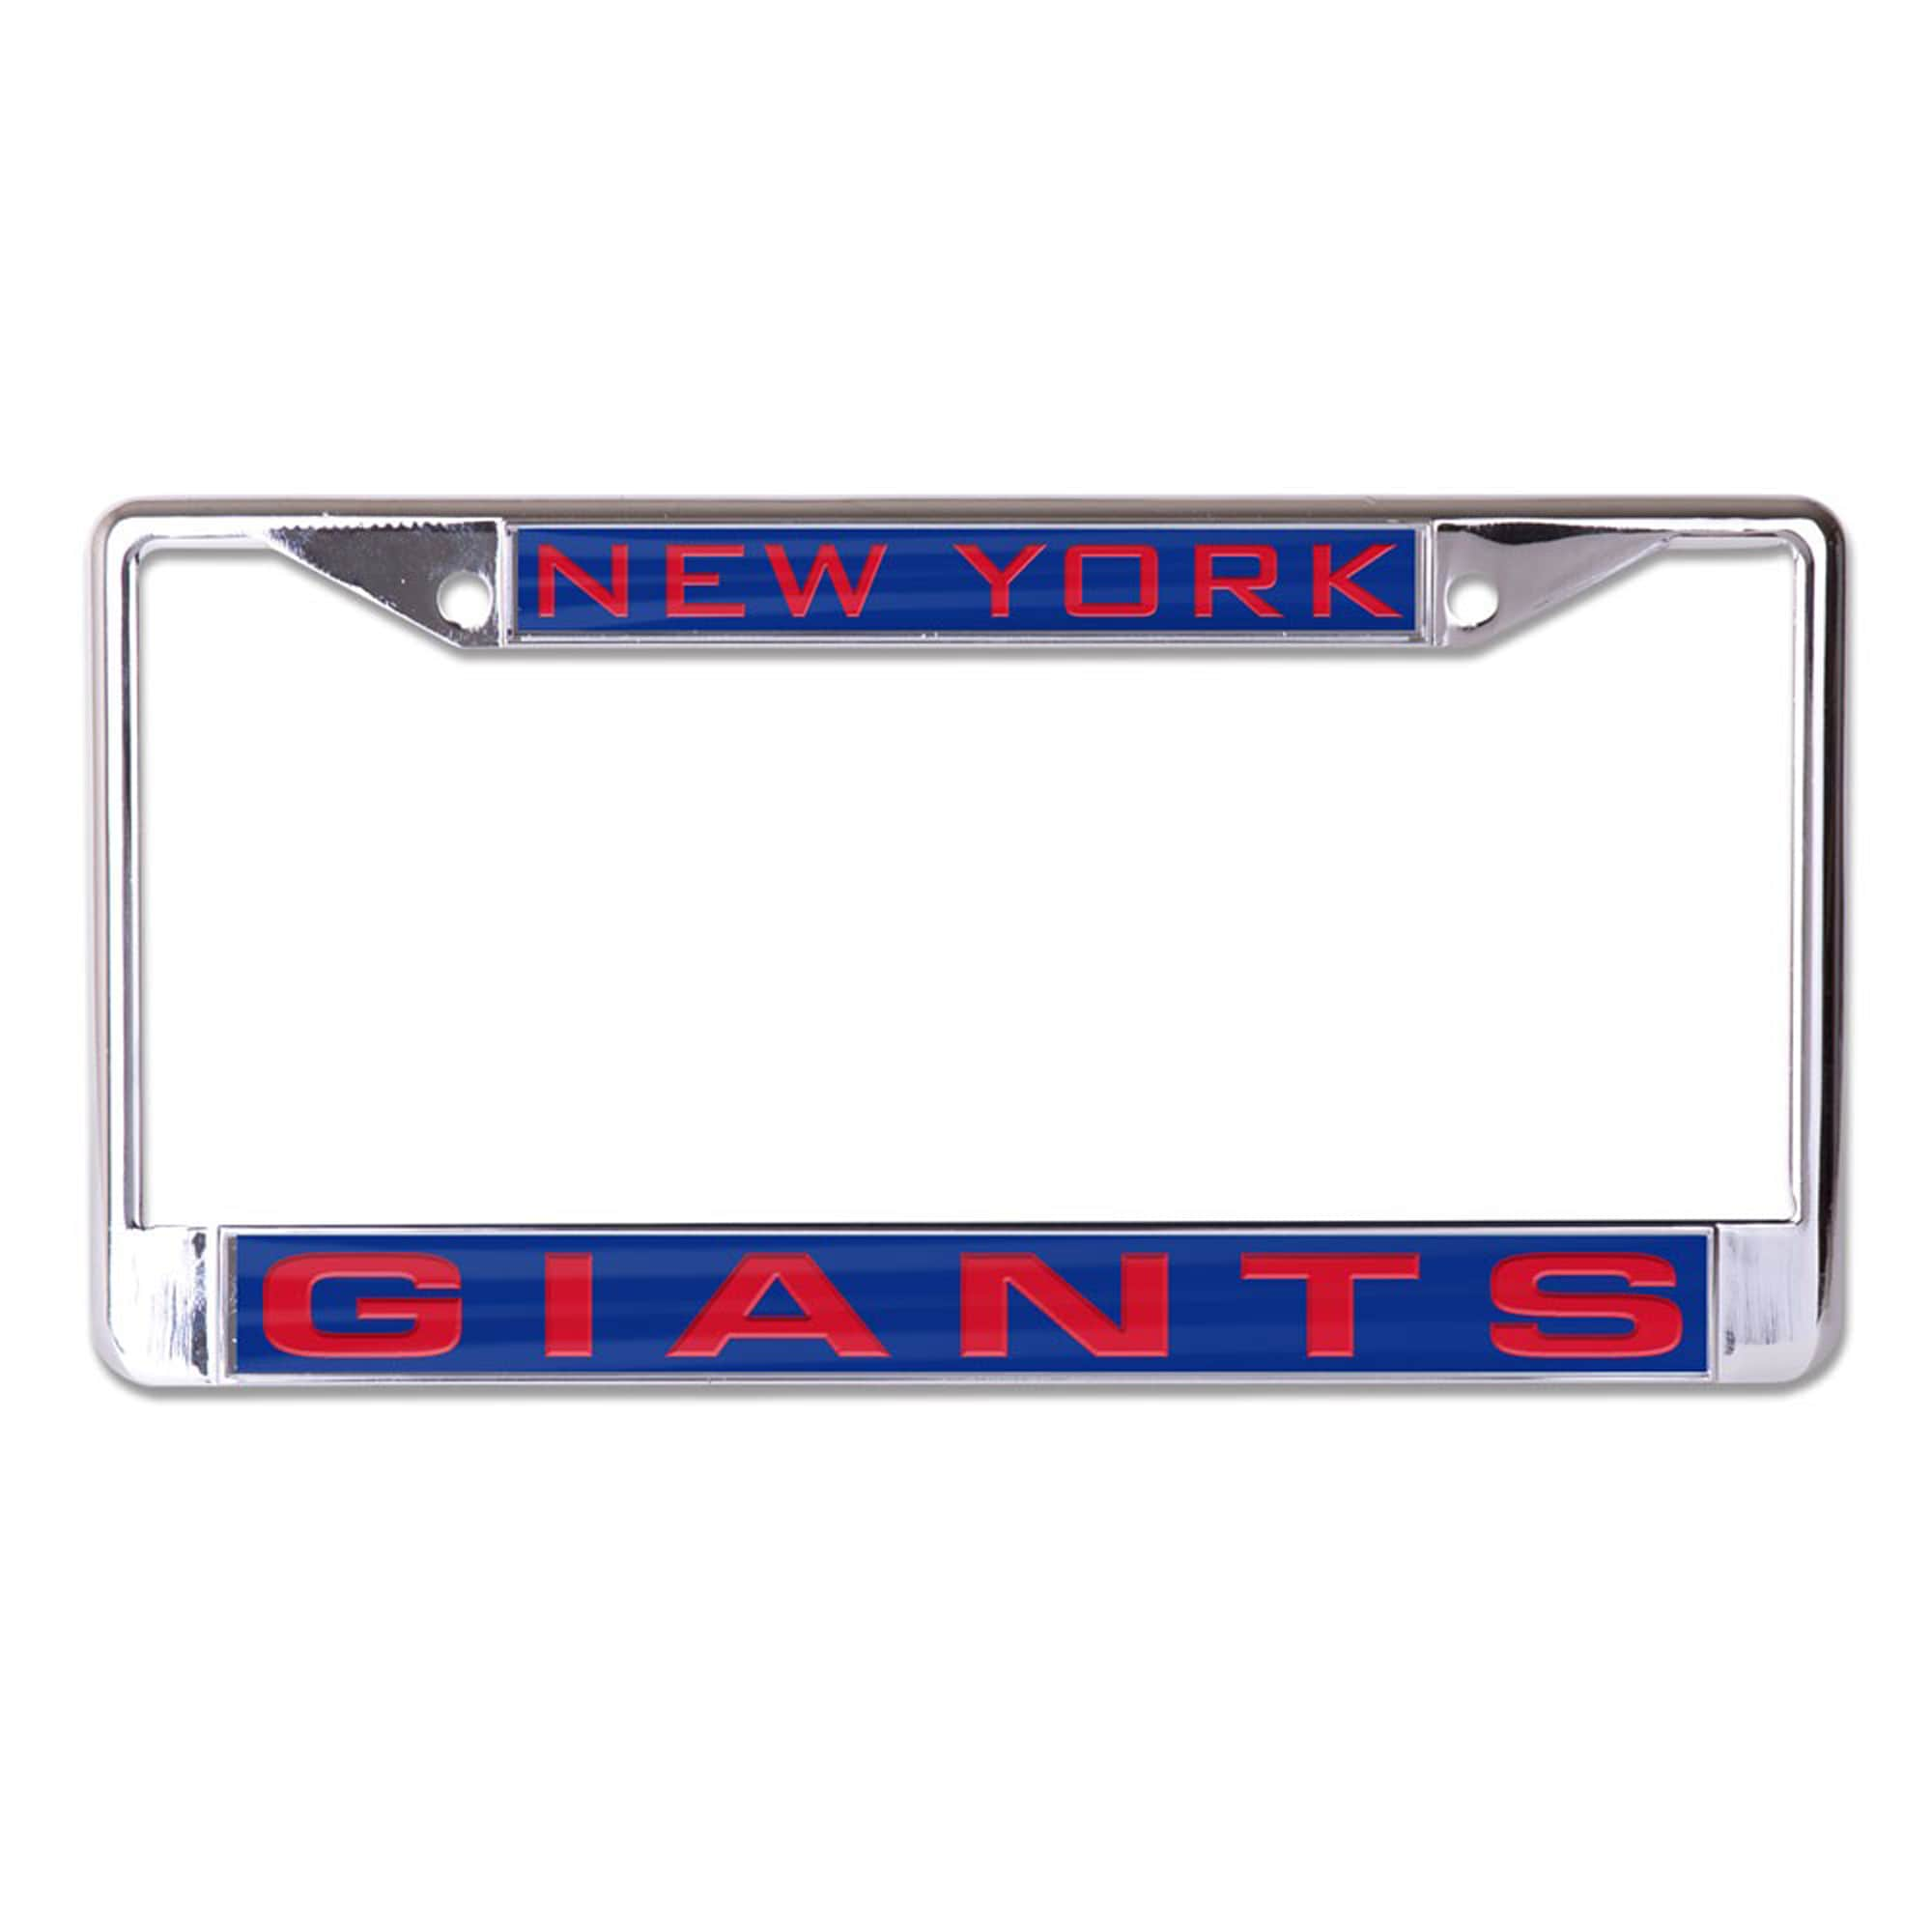 New York Giants WinCraft Inlaid Metal License Plate Frame